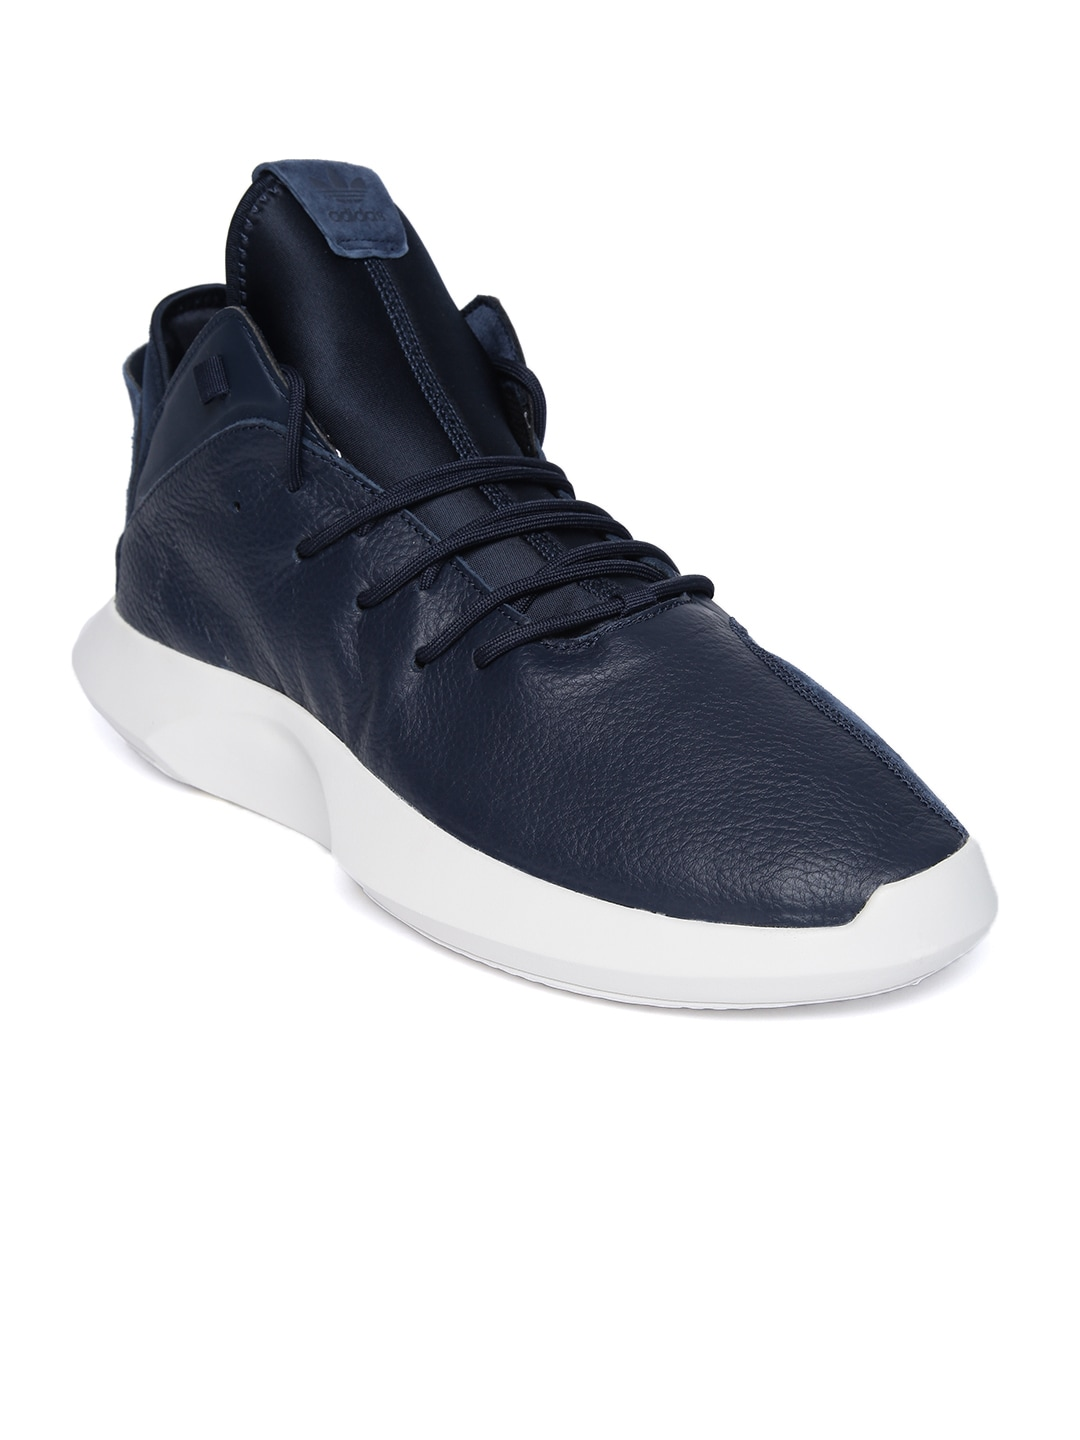 bf86f4781f0e99 Adidas Leather Shoes - Buy Adidas Leather Shoes Online in India